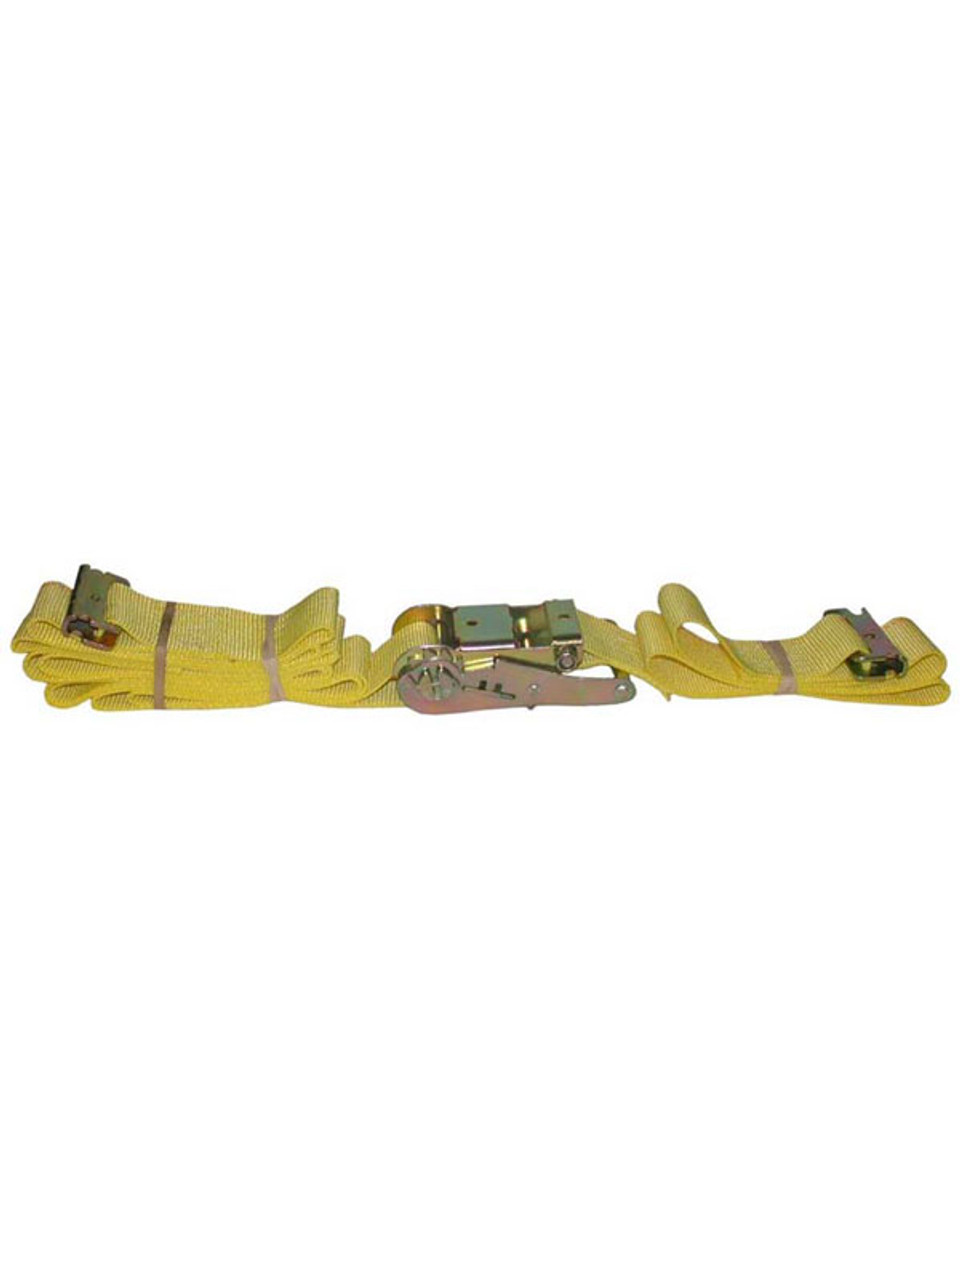 1075 --- E-Track Strap with Ratchet - 12'